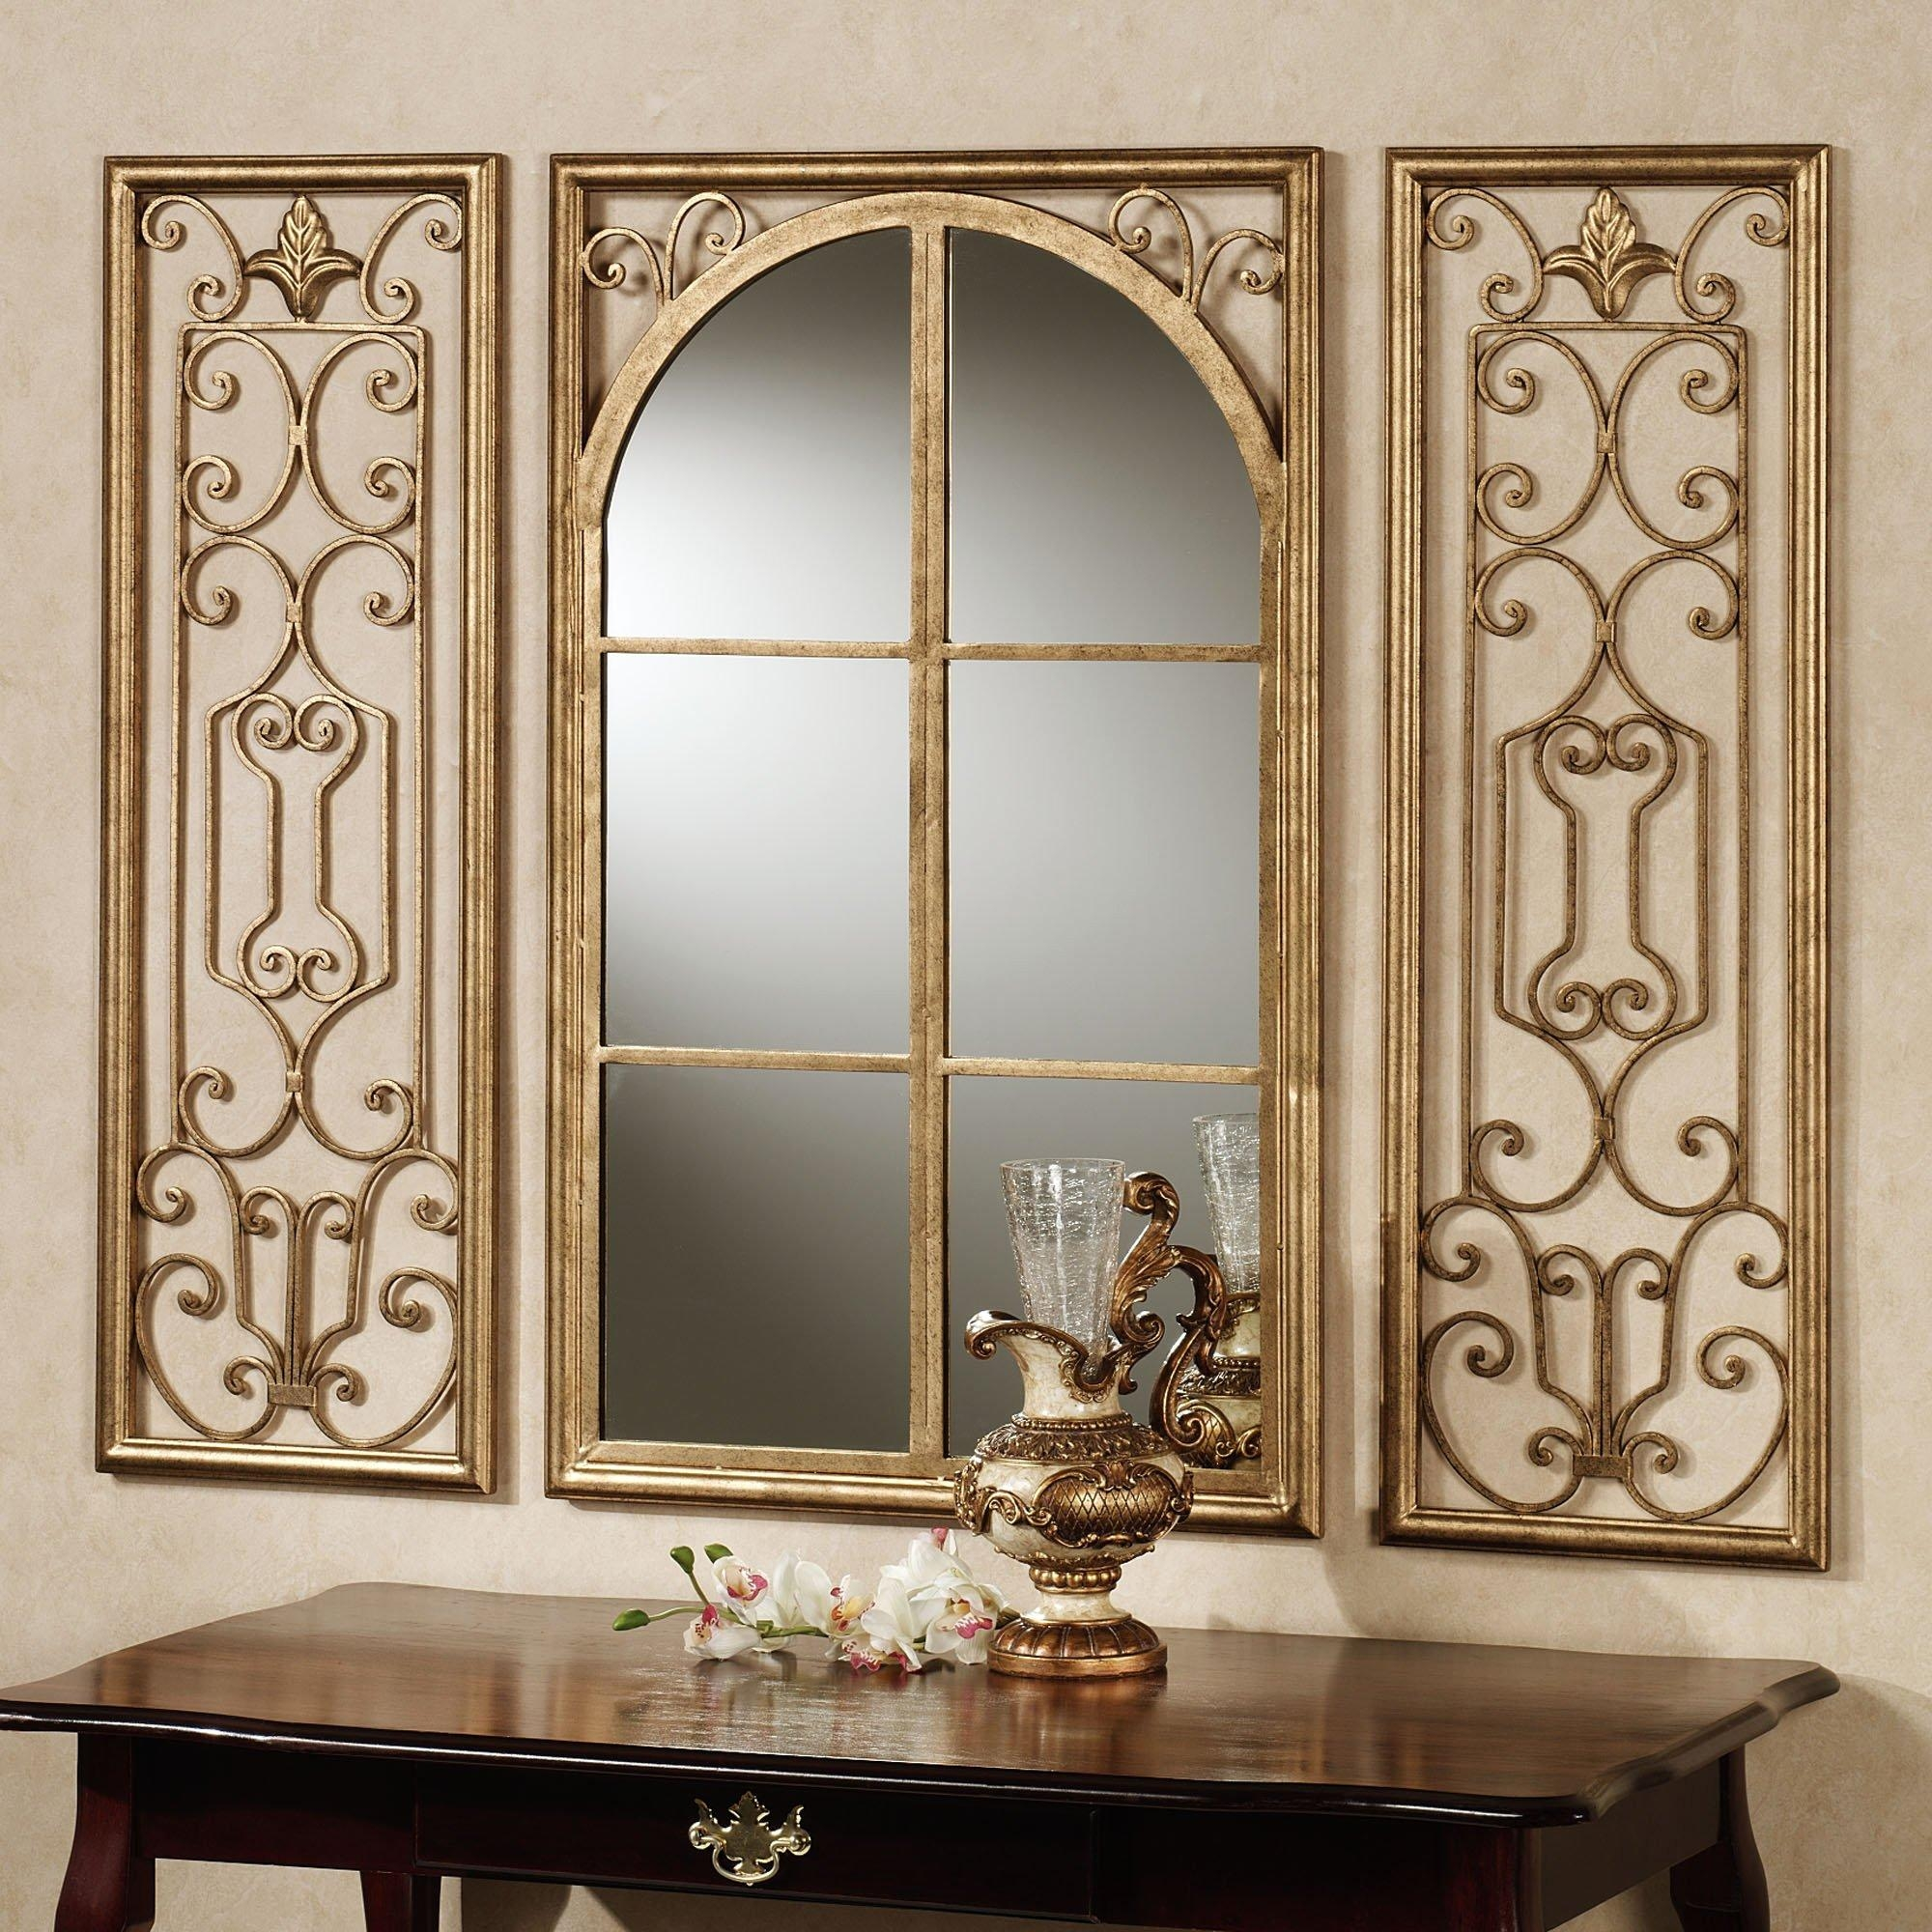 Fancy Decorative Mirrors For Living Room Using Gold Painted Pertaining To Black Wrought Iron Mirrors (Image 8 of 20)